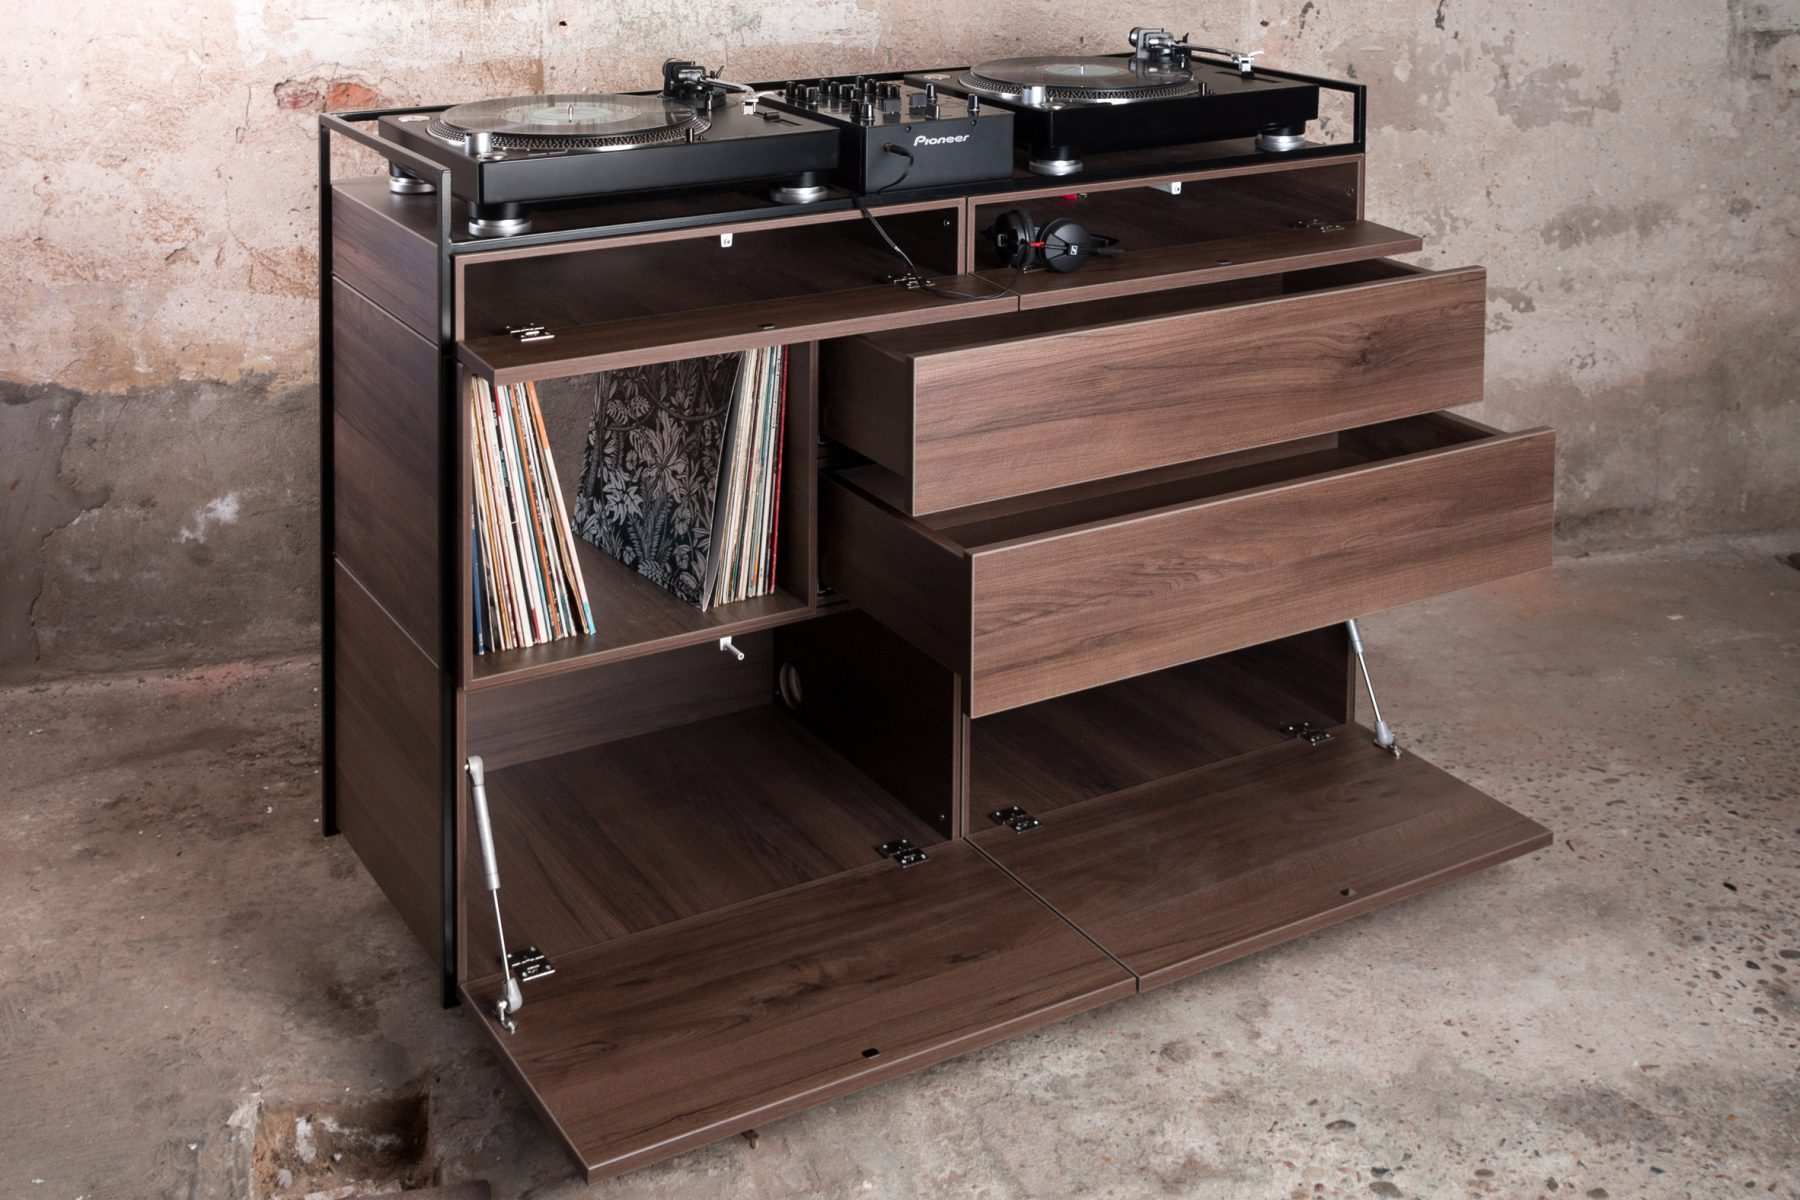 vinyl record furniture. Goal,\u201d Said Ten Velden, Who Was Motivated To Create The Selectors Cabinet After Noting A Lack Of Furniture Designed Specifically For Vinyl Collectors. Record U